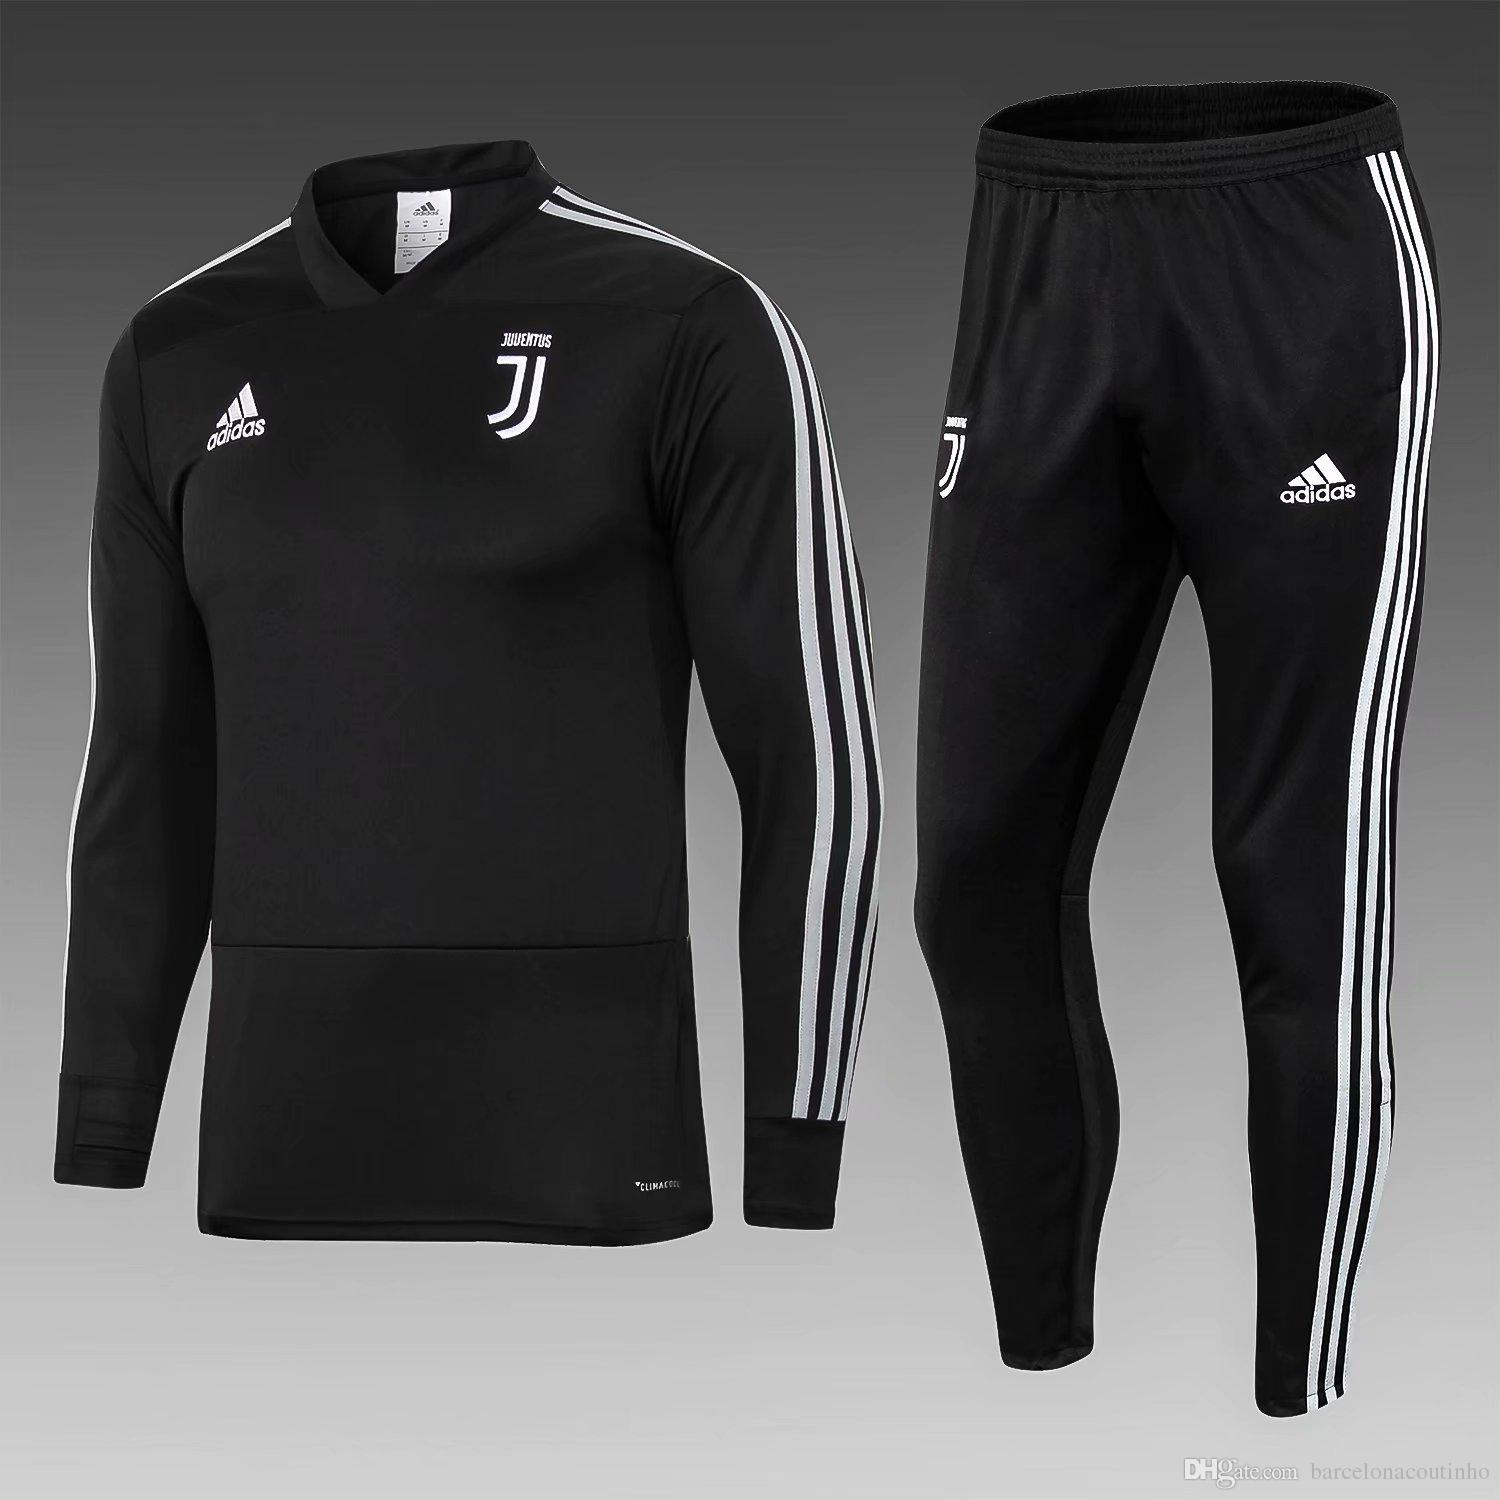 c6c666368 2019 18 19 New Thailand AAA Quality Juventus Training Suit RONALDO DYBALA  Football Sportswear 2018 2019 New Adult Training Suit From  Barcelonacoutinho